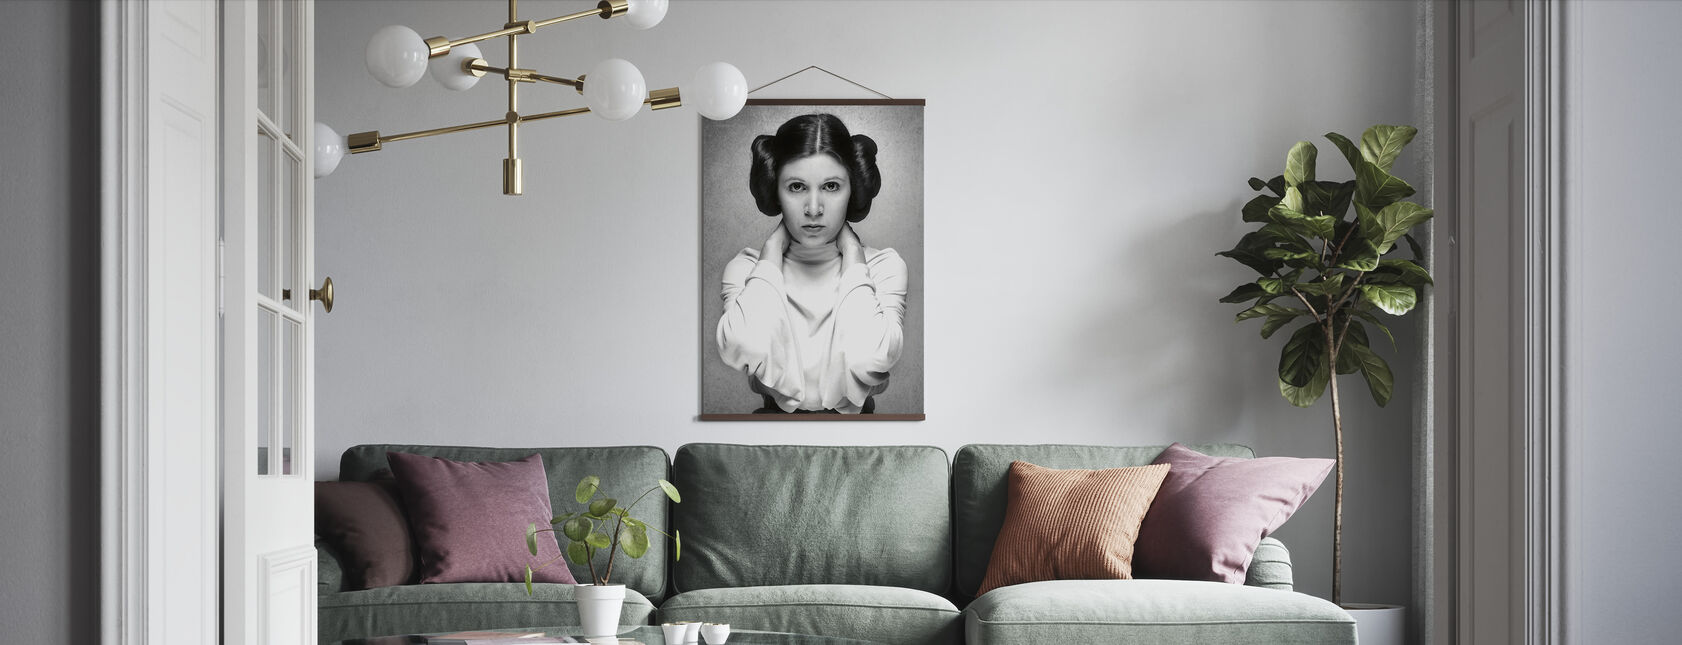 Princess Leia - Carrie Fisher - Poster - Living Room